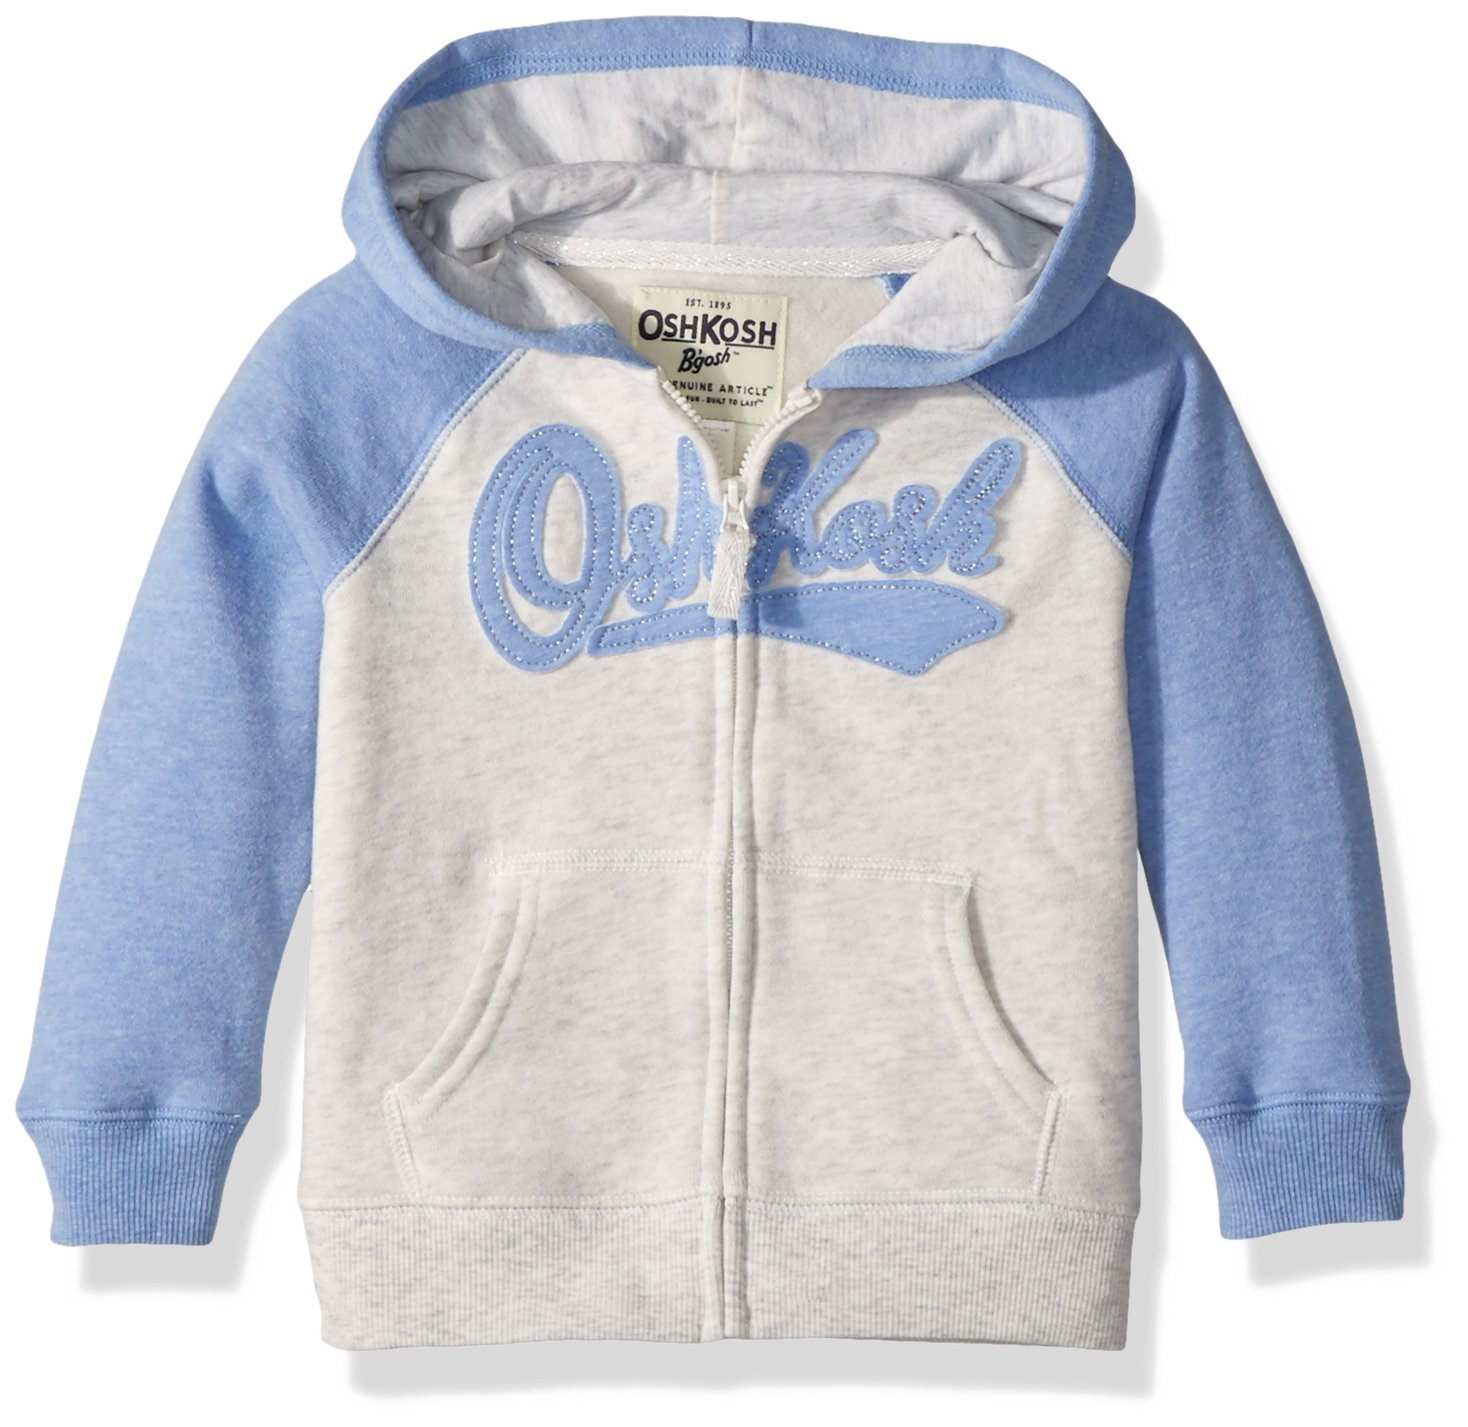 OshKosh B'Gosh Girls' Full Zip Logo Hoodie Osh Kosh 32240213